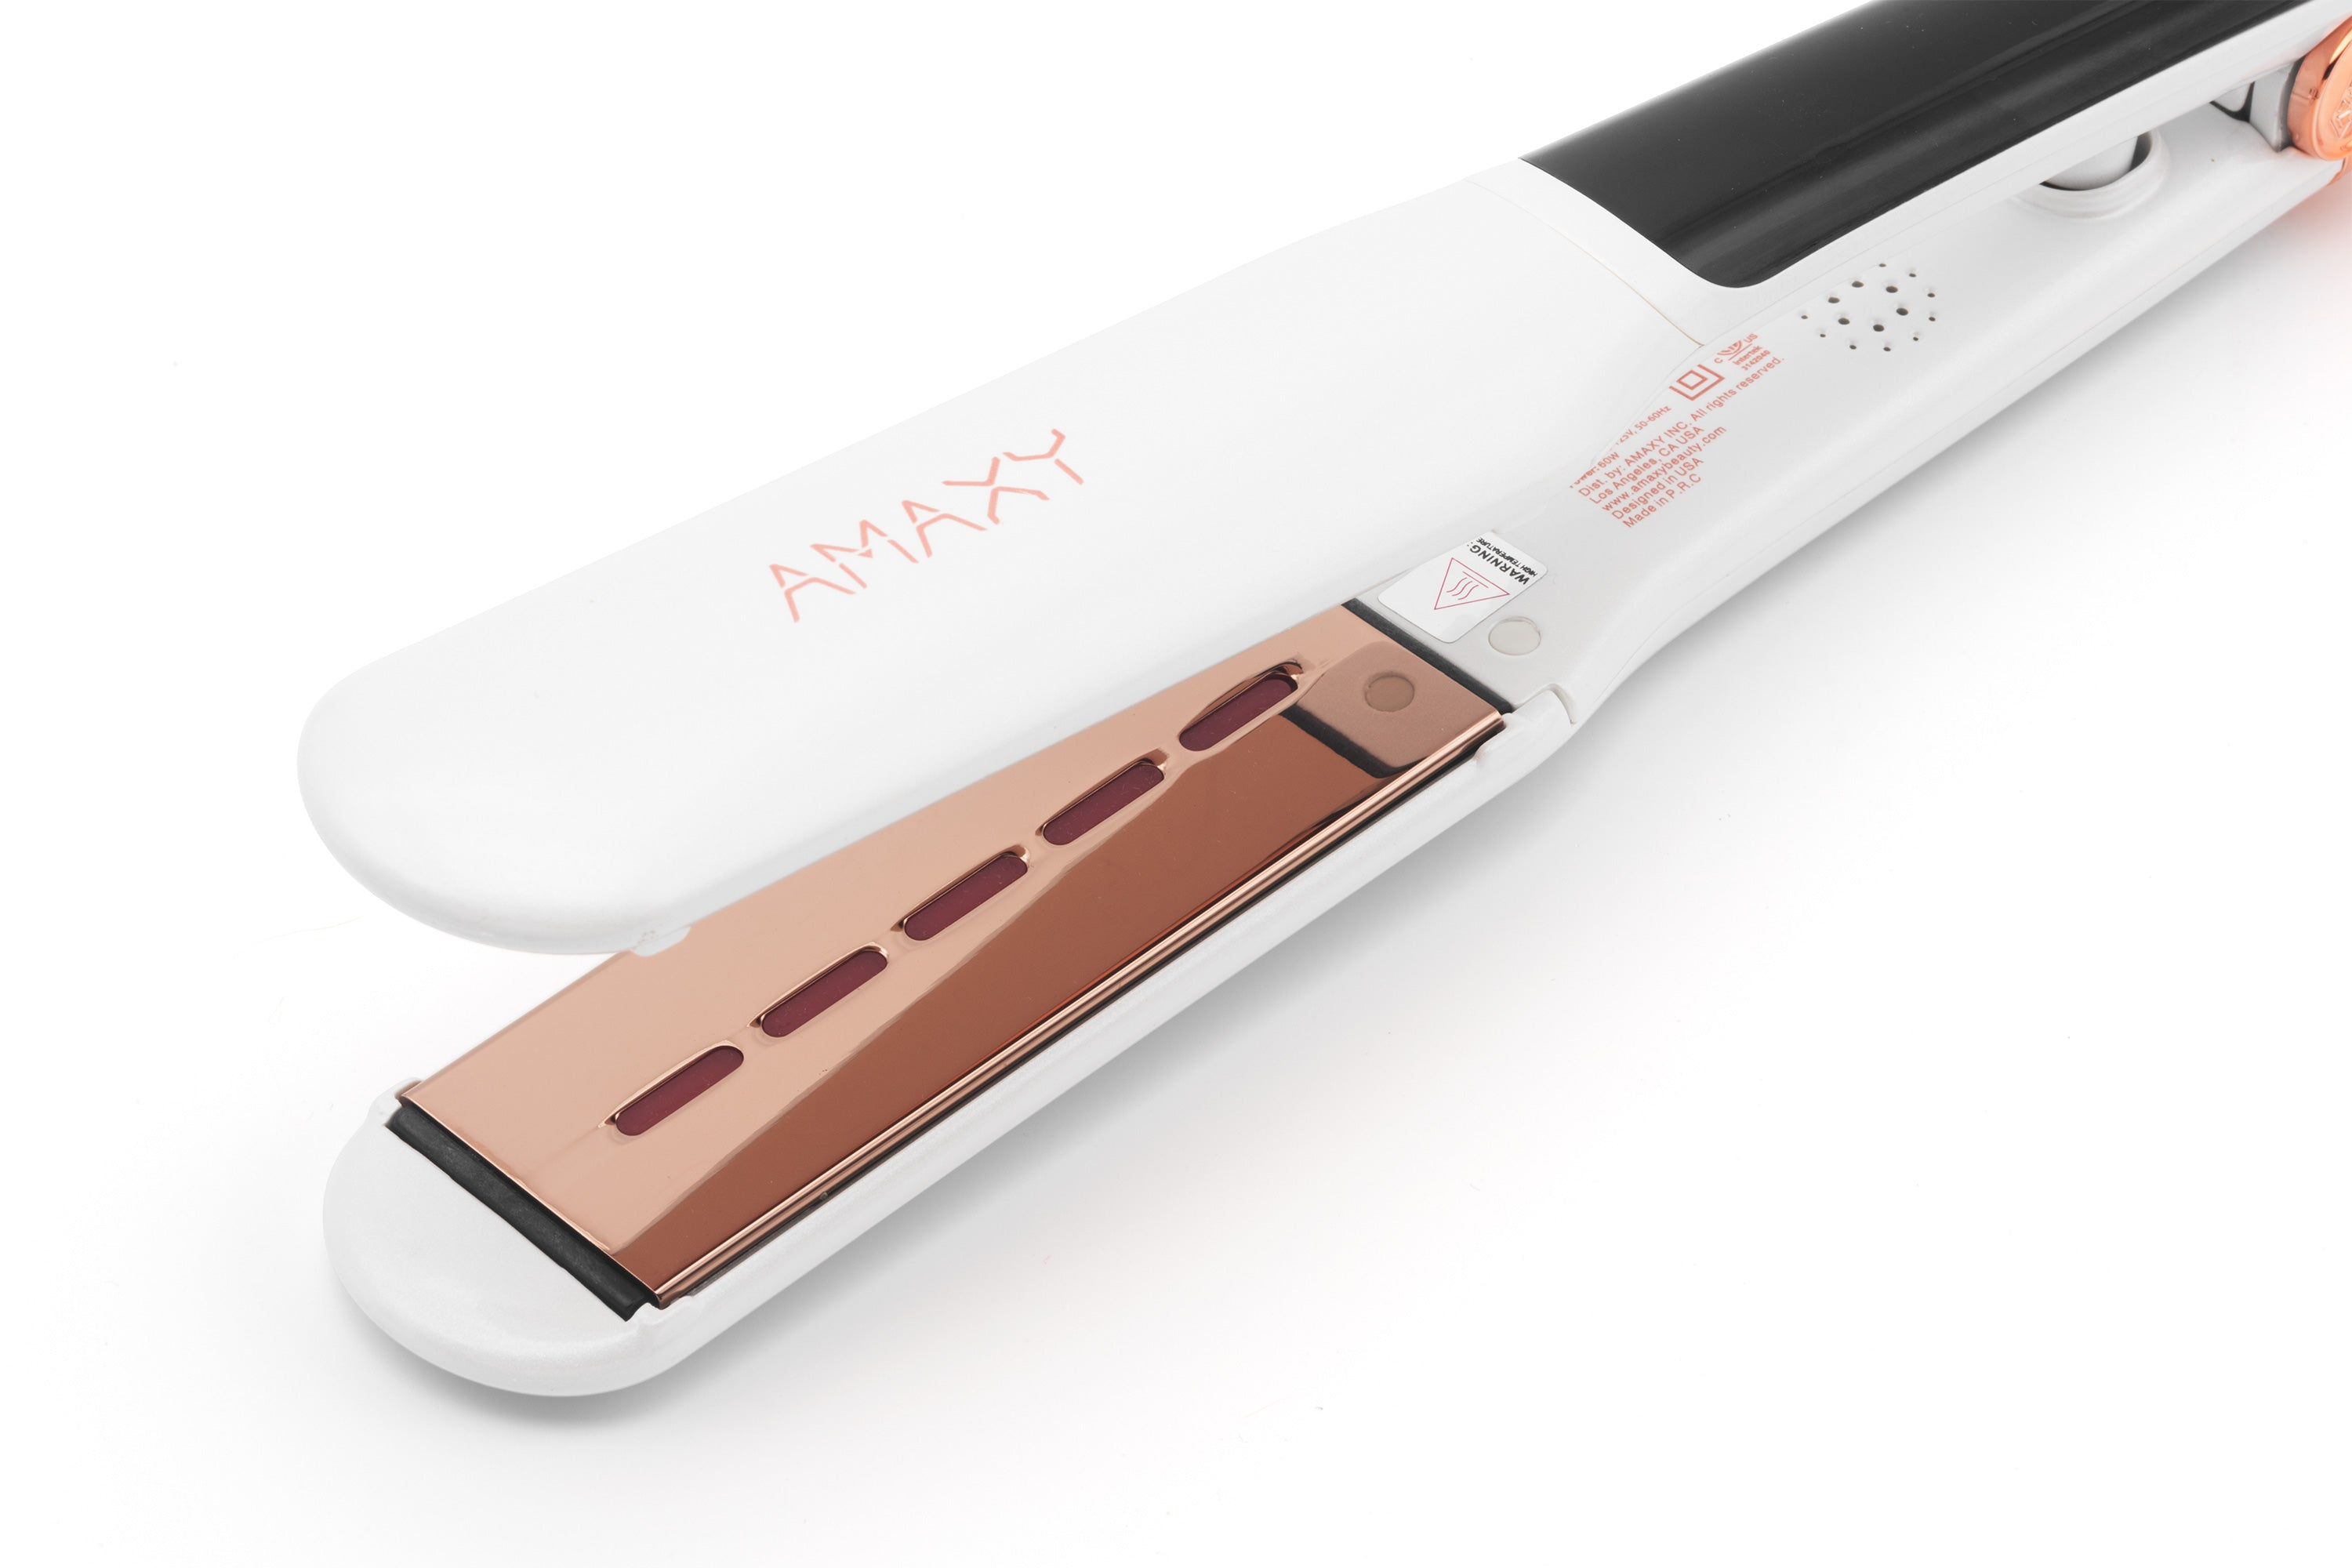 Amaxy Real Infrared Professional Flat Iron 1.5""